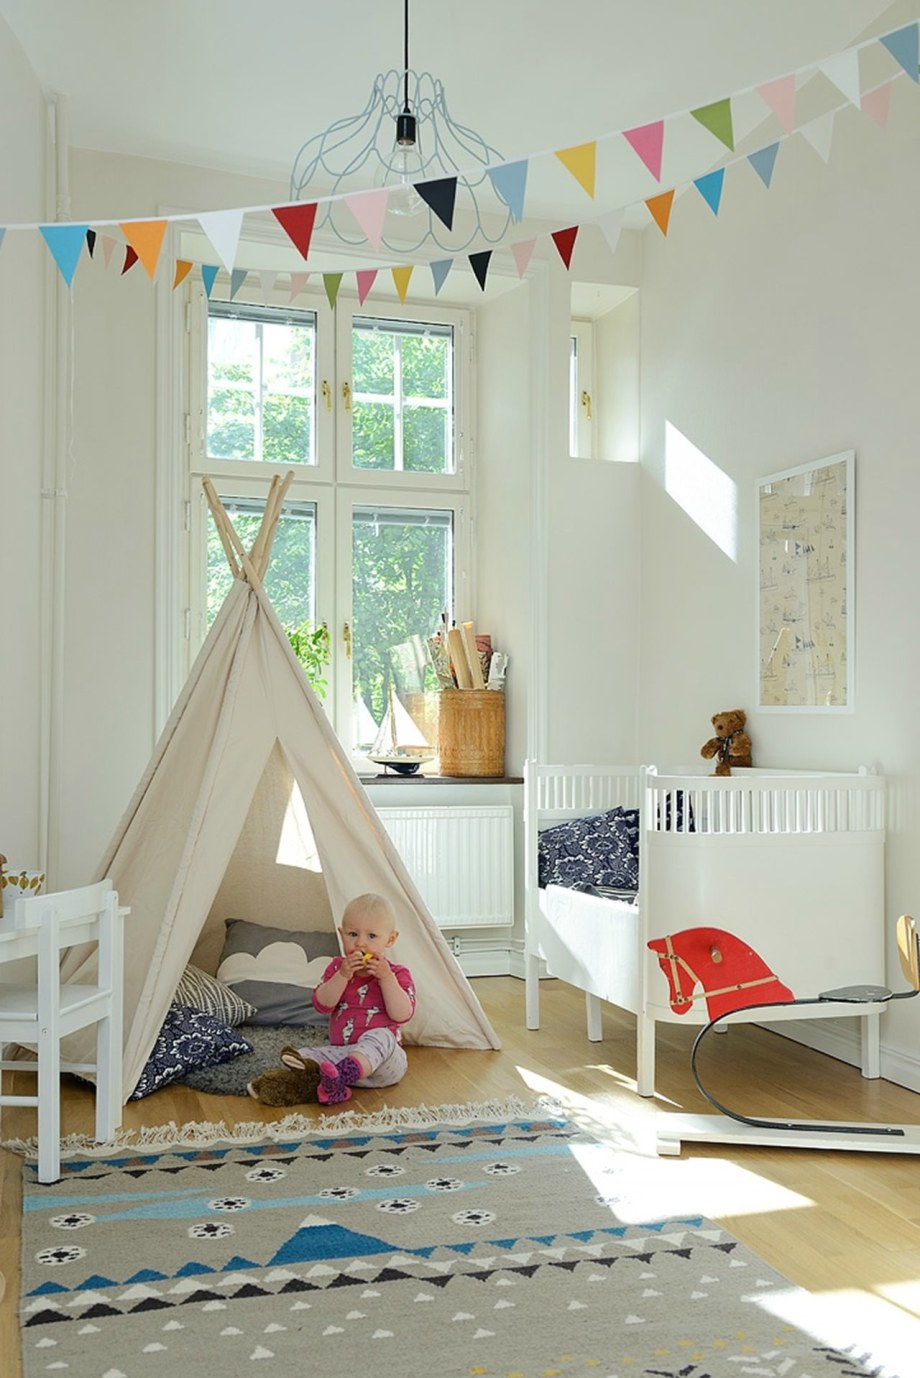 ScandinavianStyled Childrens Room